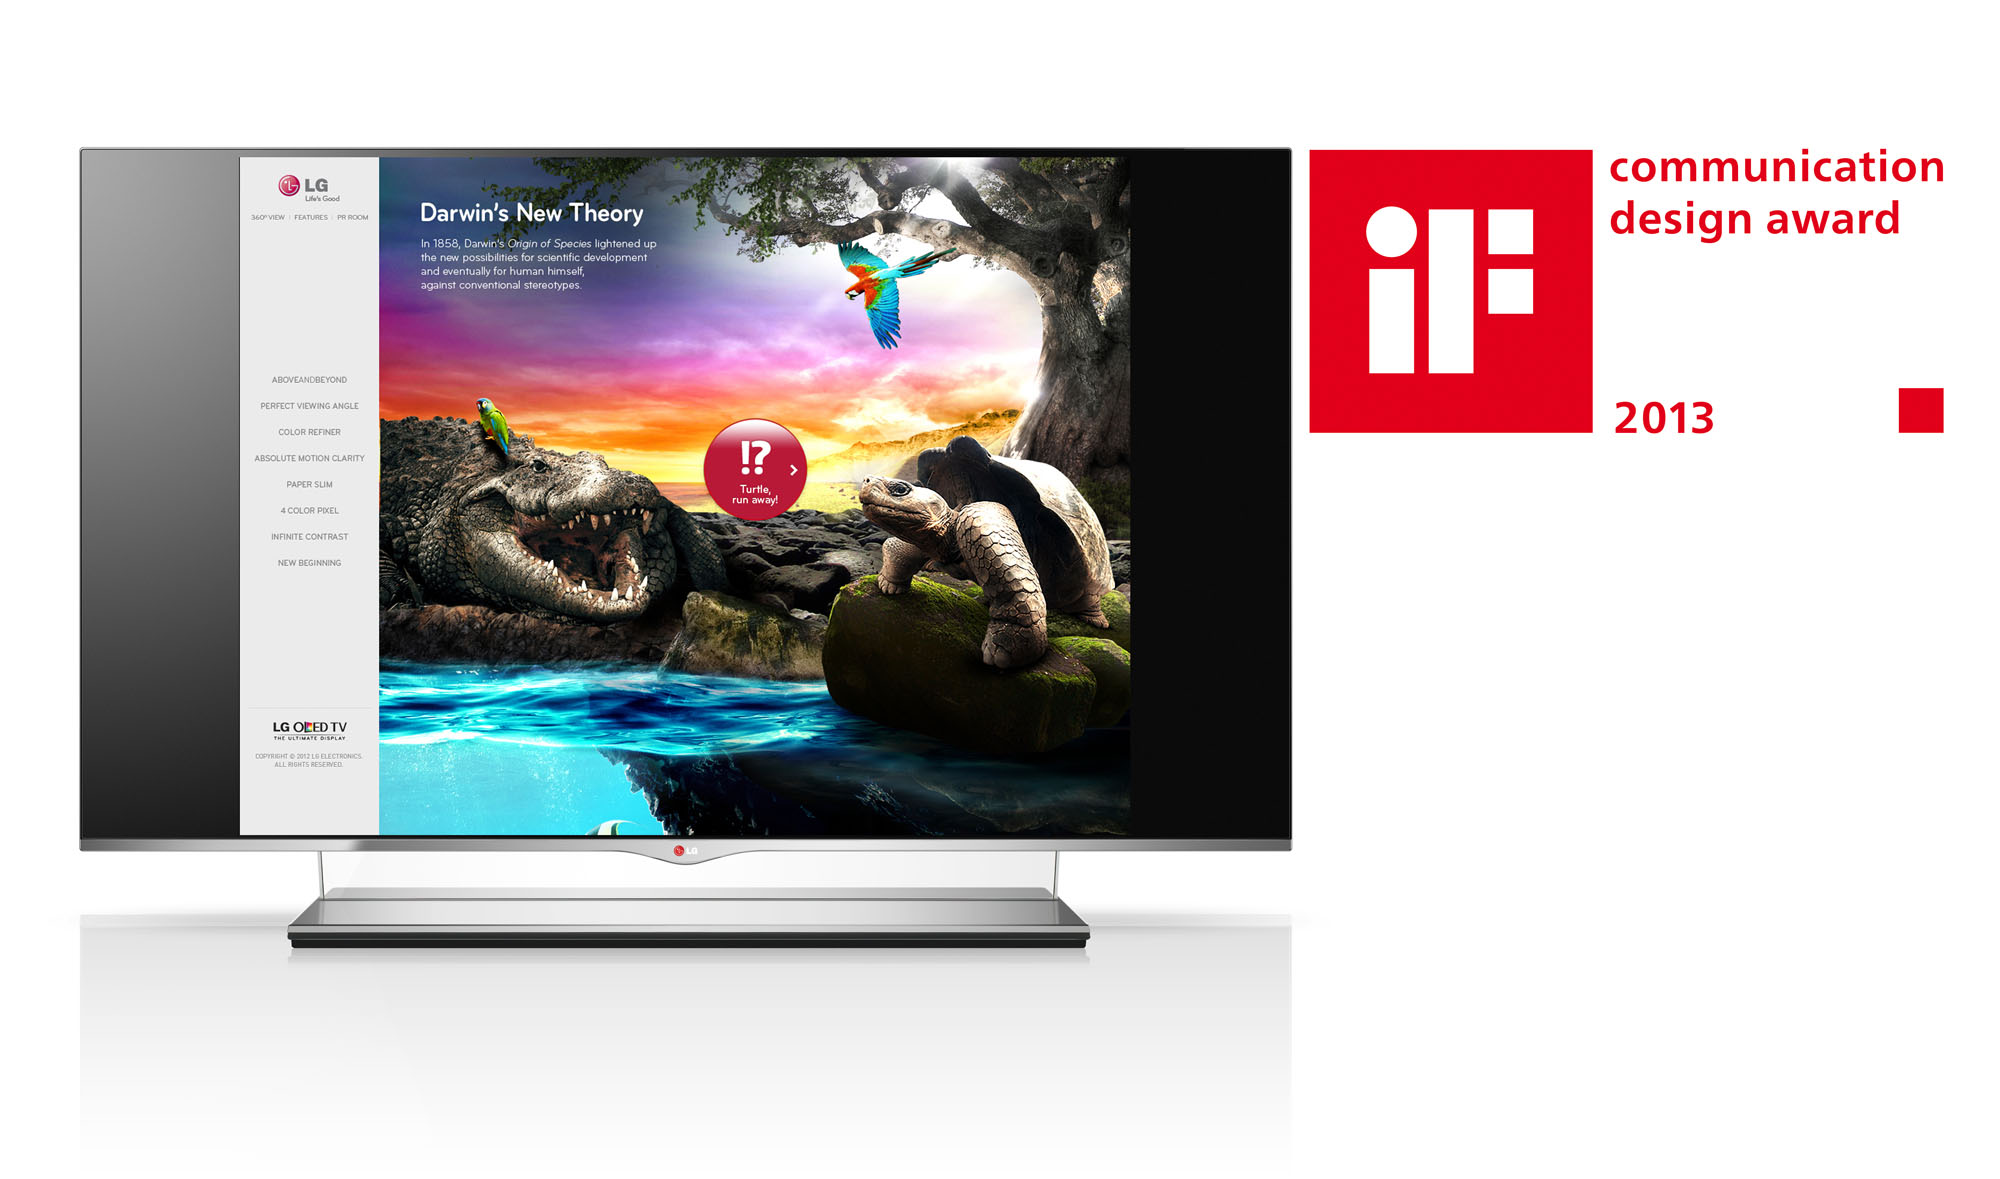 LG OLED TV displaying its microsite with the 2013 iF Design Award logo on the right